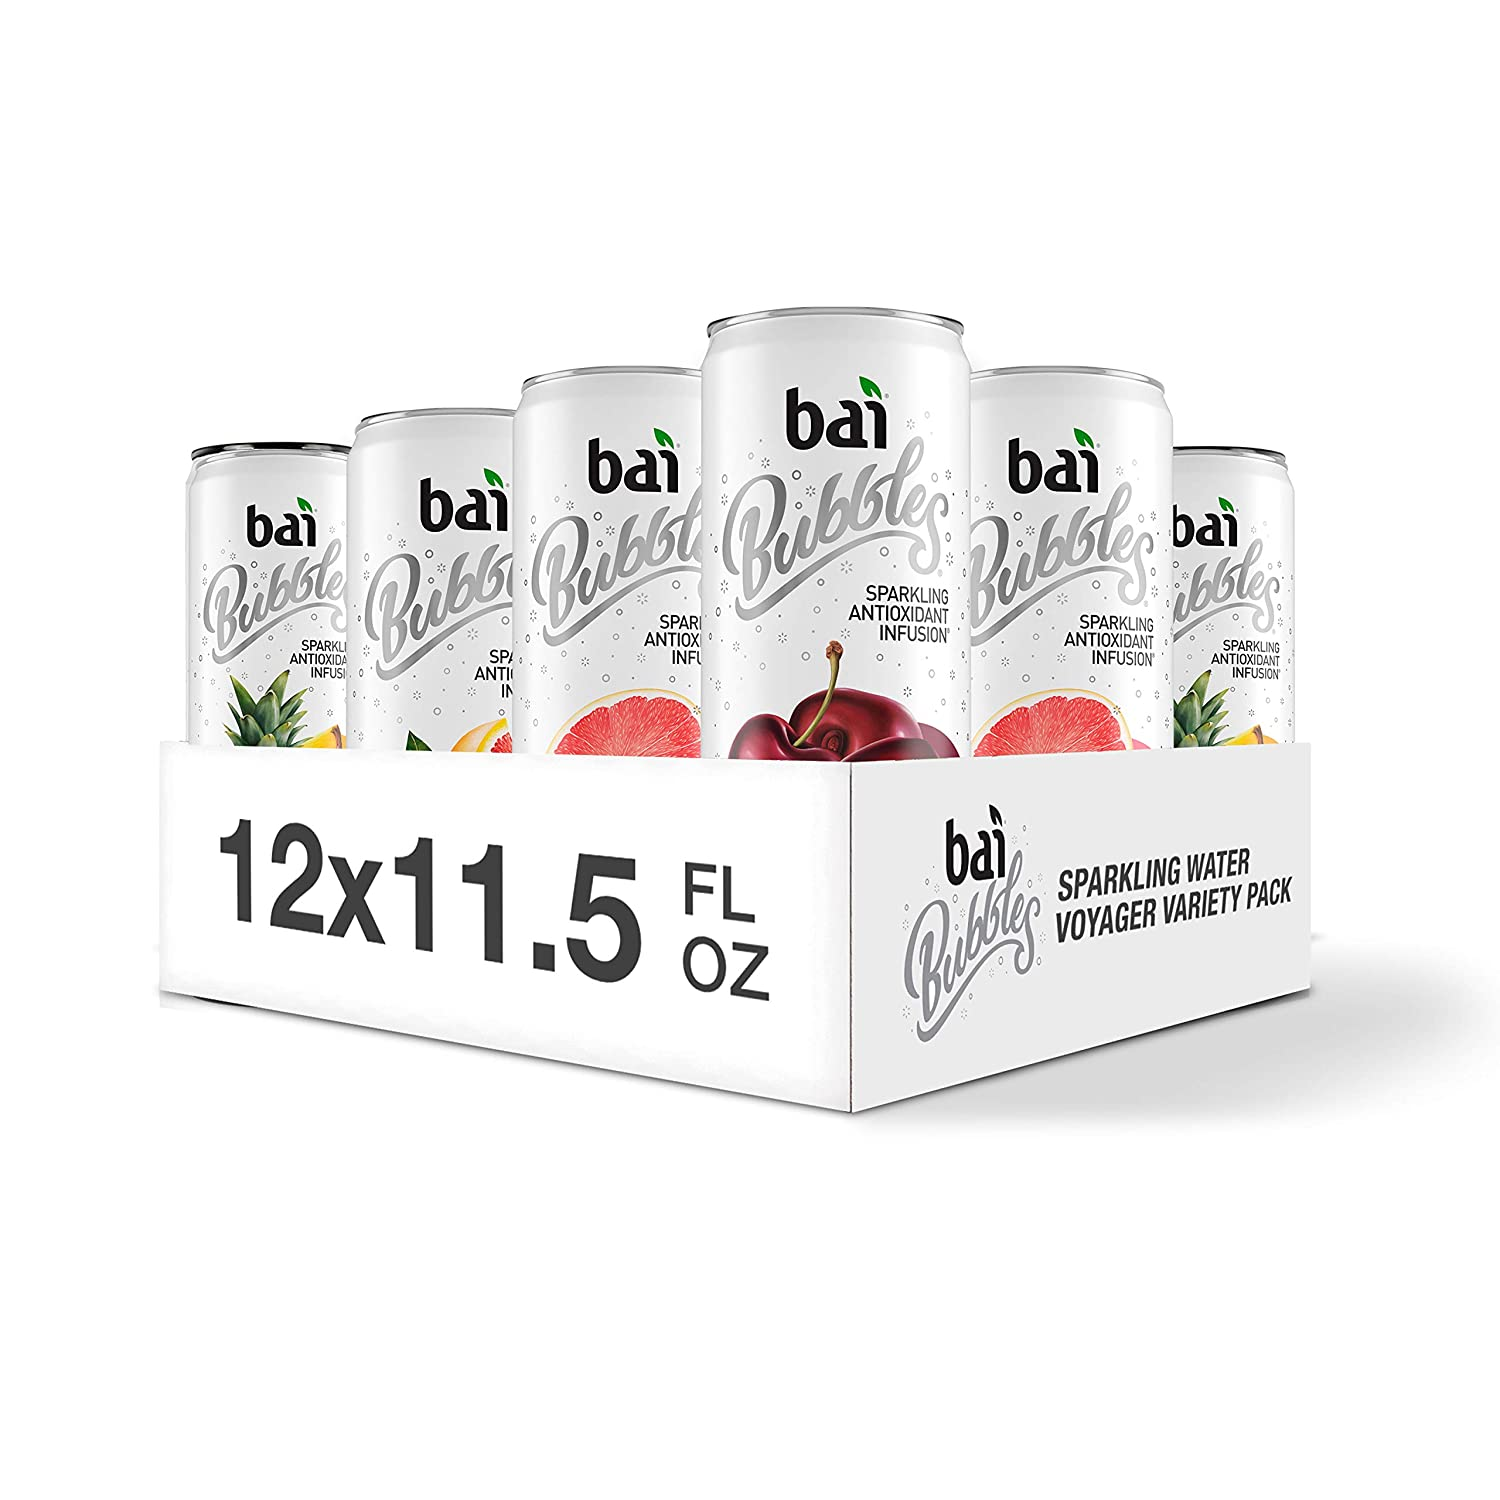 Bai Bubbles Sparkling Water, Voyager Variety Pack, Antioxidant Infused, 11.5 Fluid Ounce Cans, 12 Count, 3 each of Bolivia Black Cherry, Gimbi Pink Grapefruit, Peru Pineapple, Jamaica Blood Orange